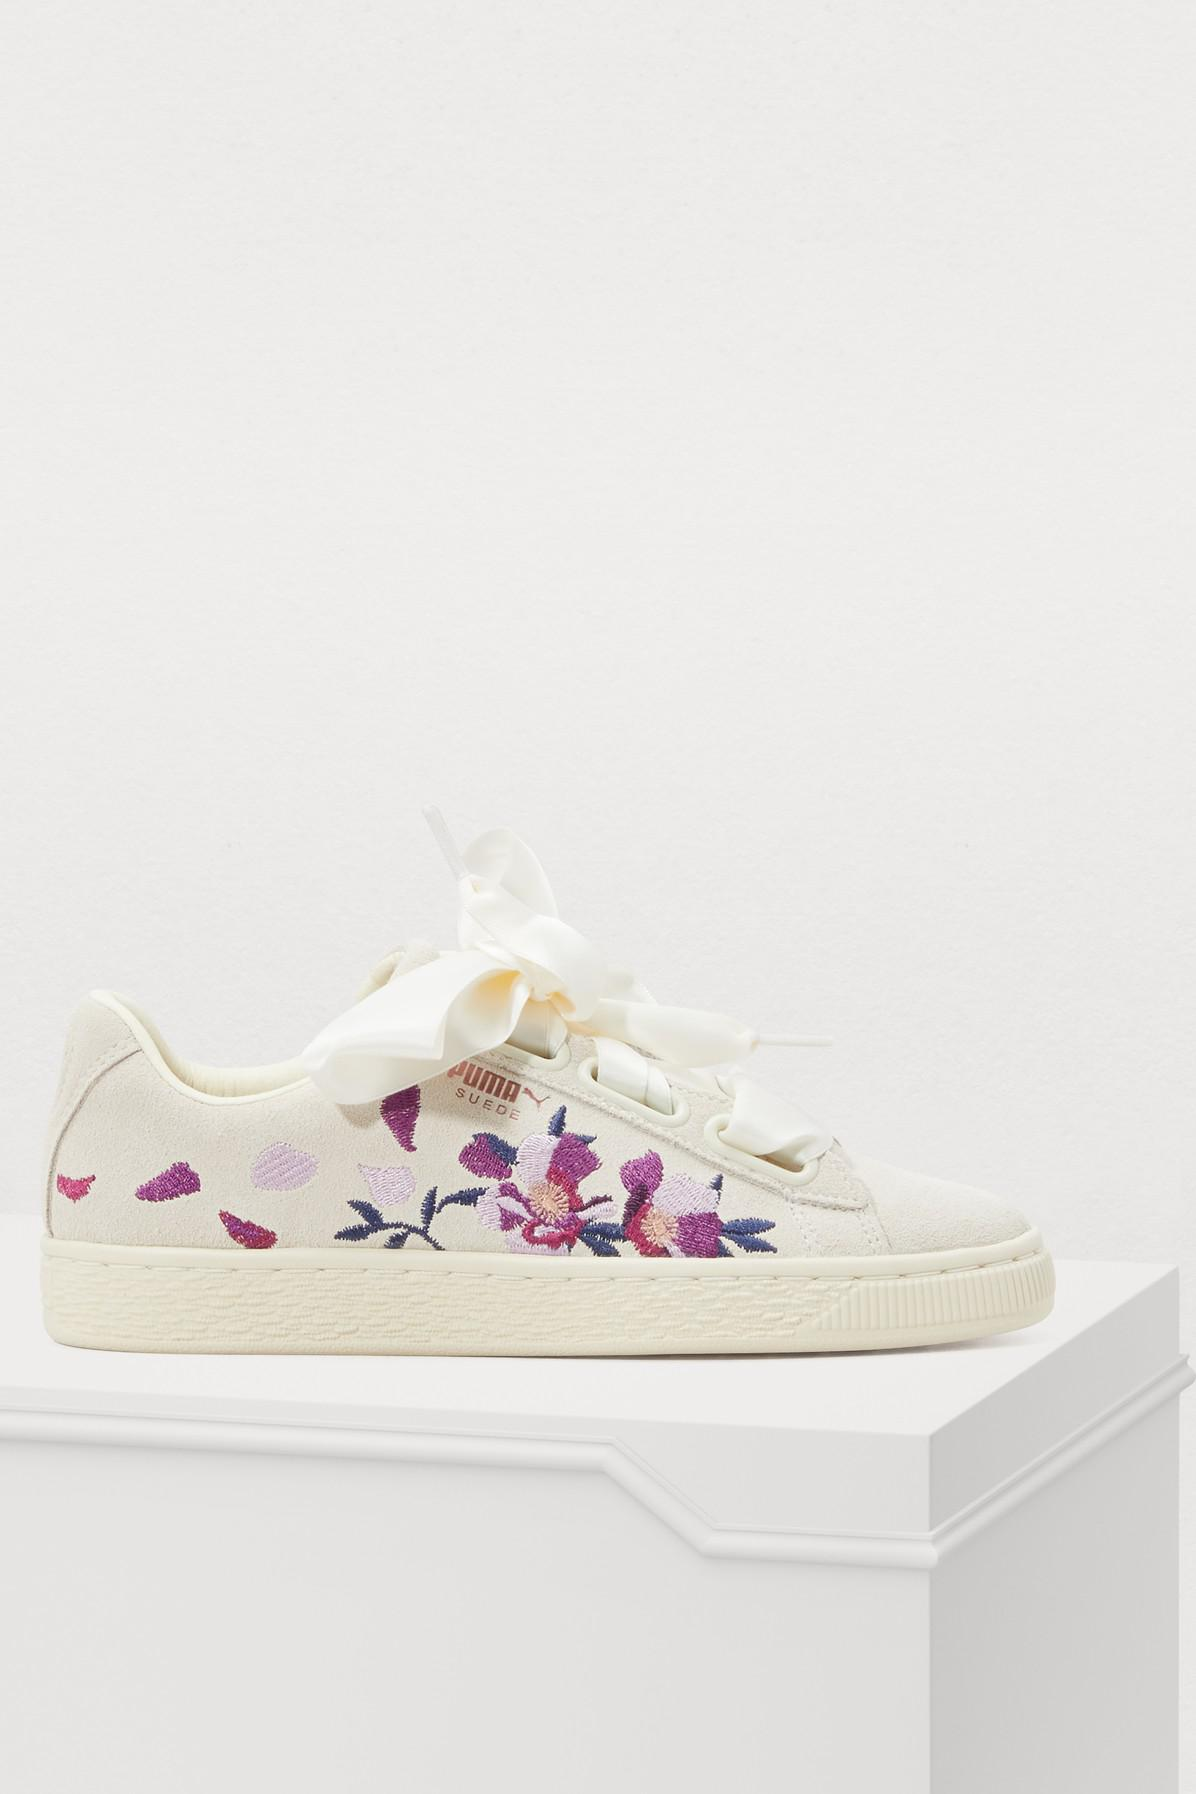 ea3482825e66 Lyst - PUMA Heart Flower Sneakers in White